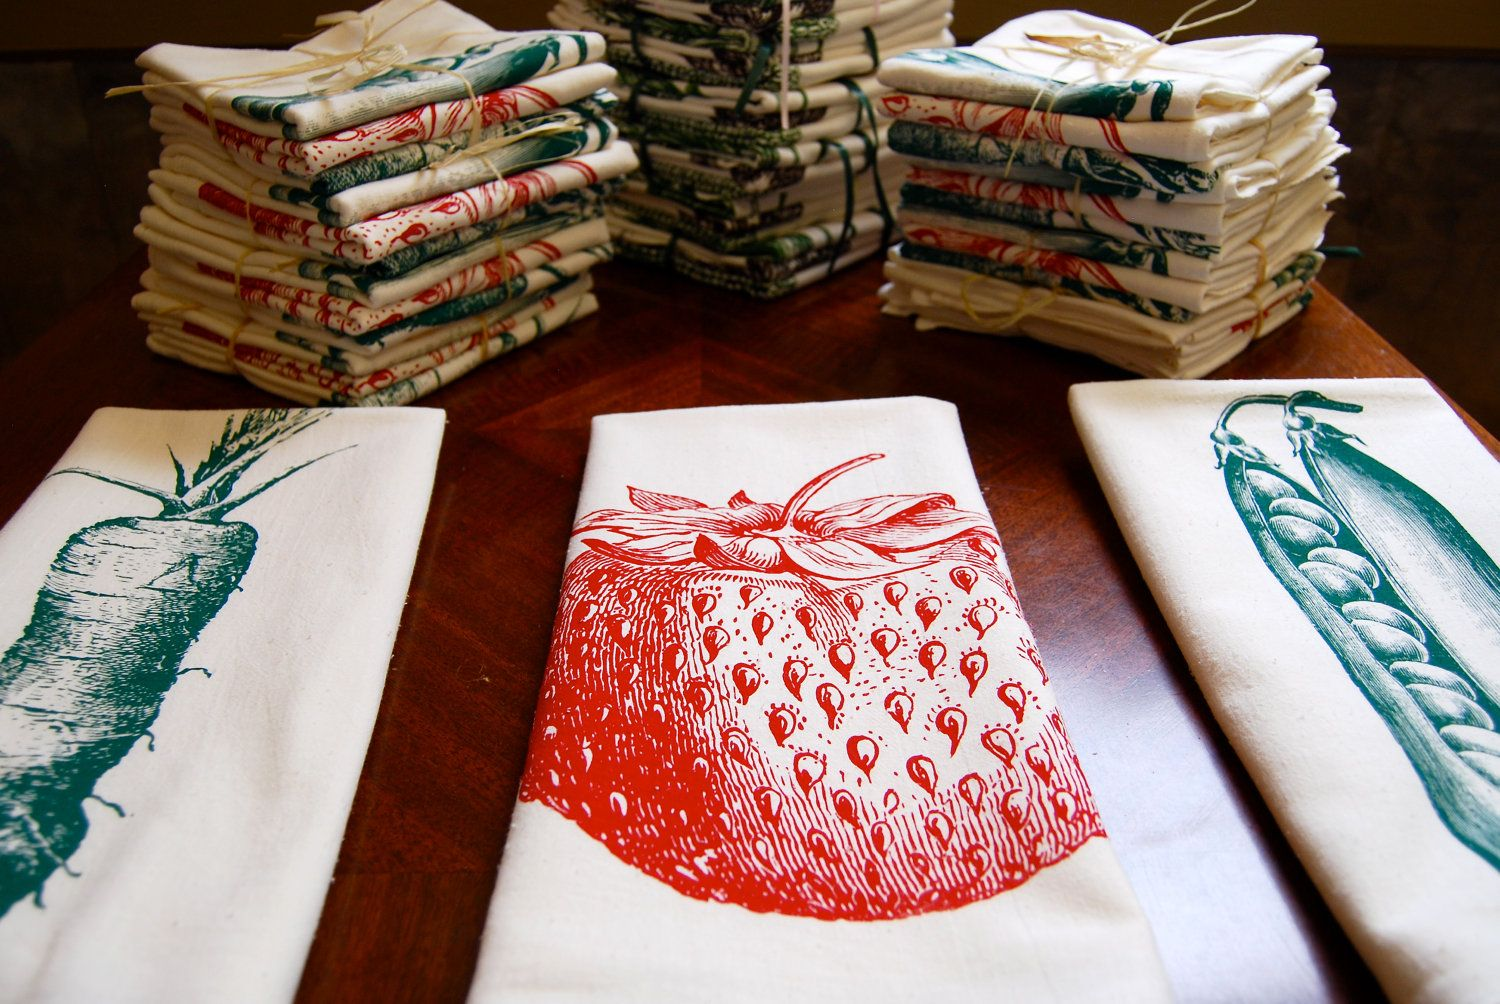 Screen printed flour sack towels by Milwaukee based Orchard